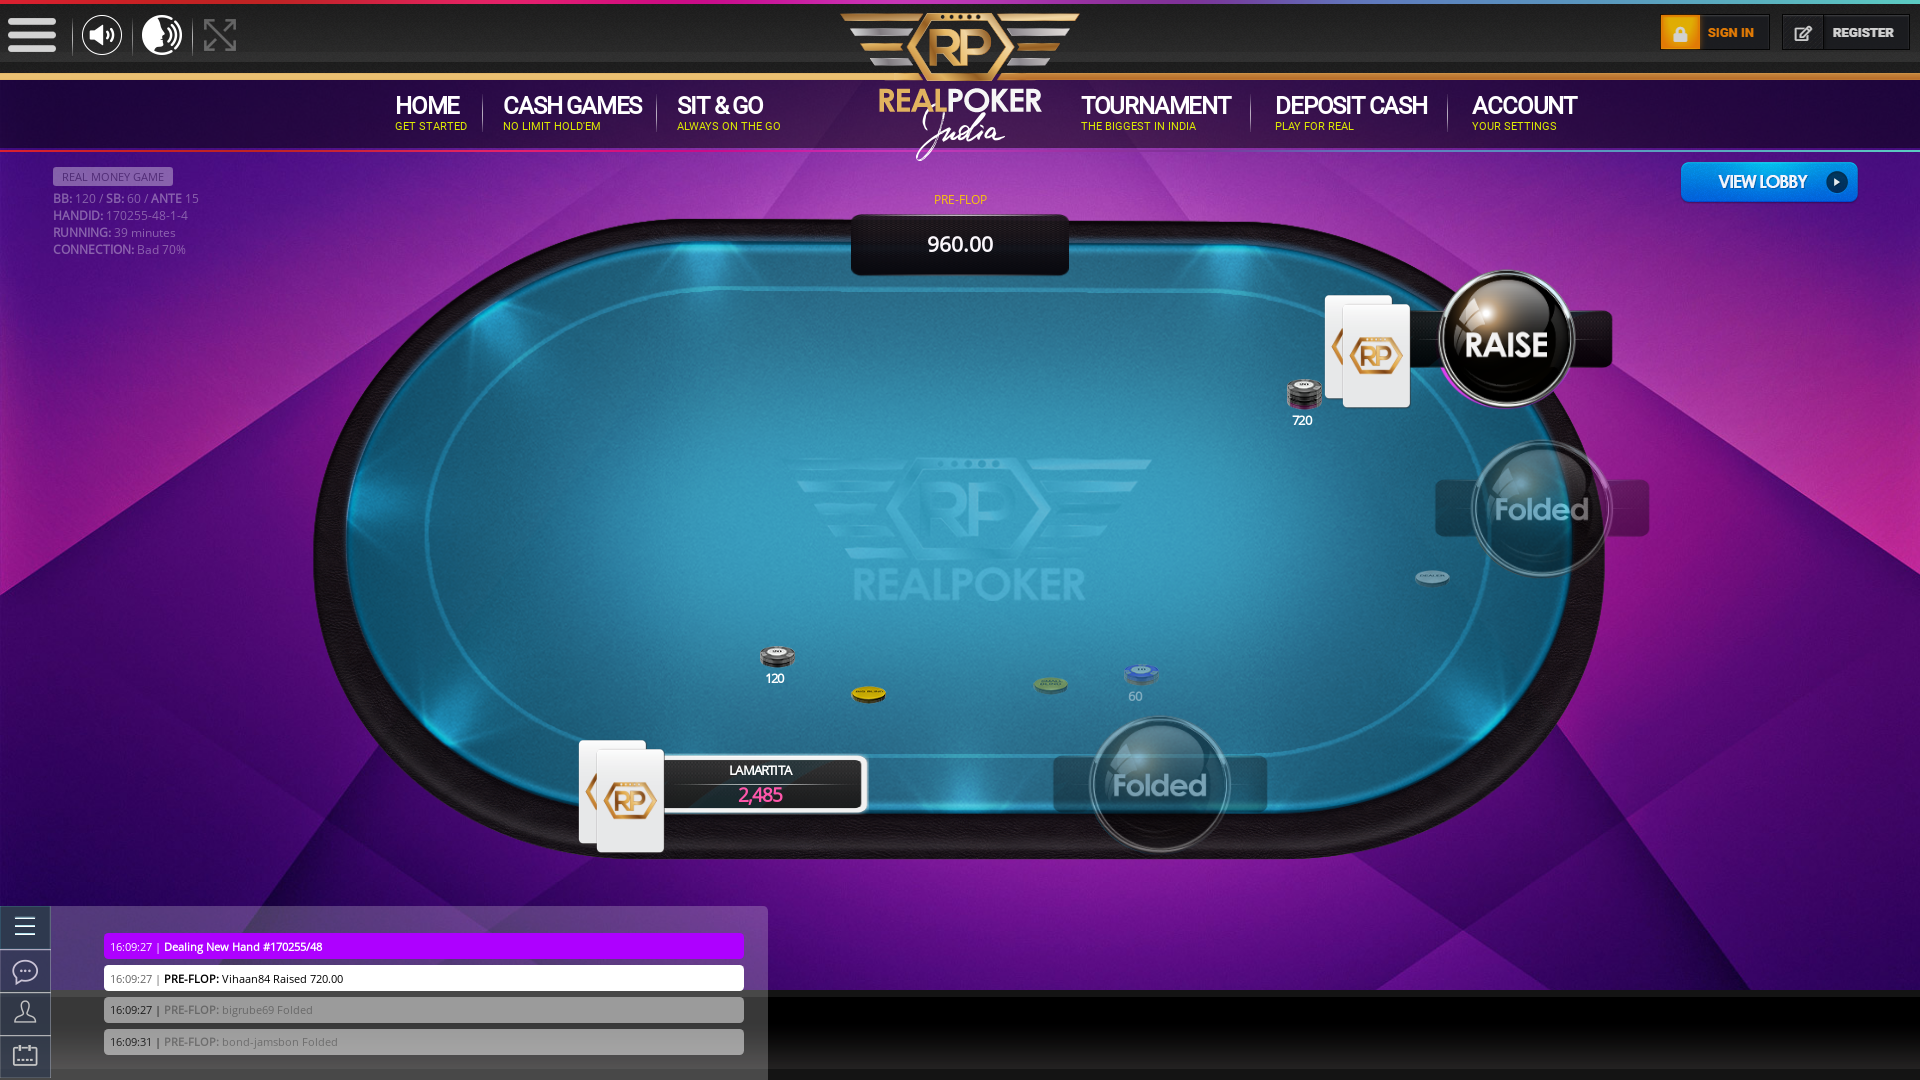 Indian poker on a 10 player table in the 39th minute